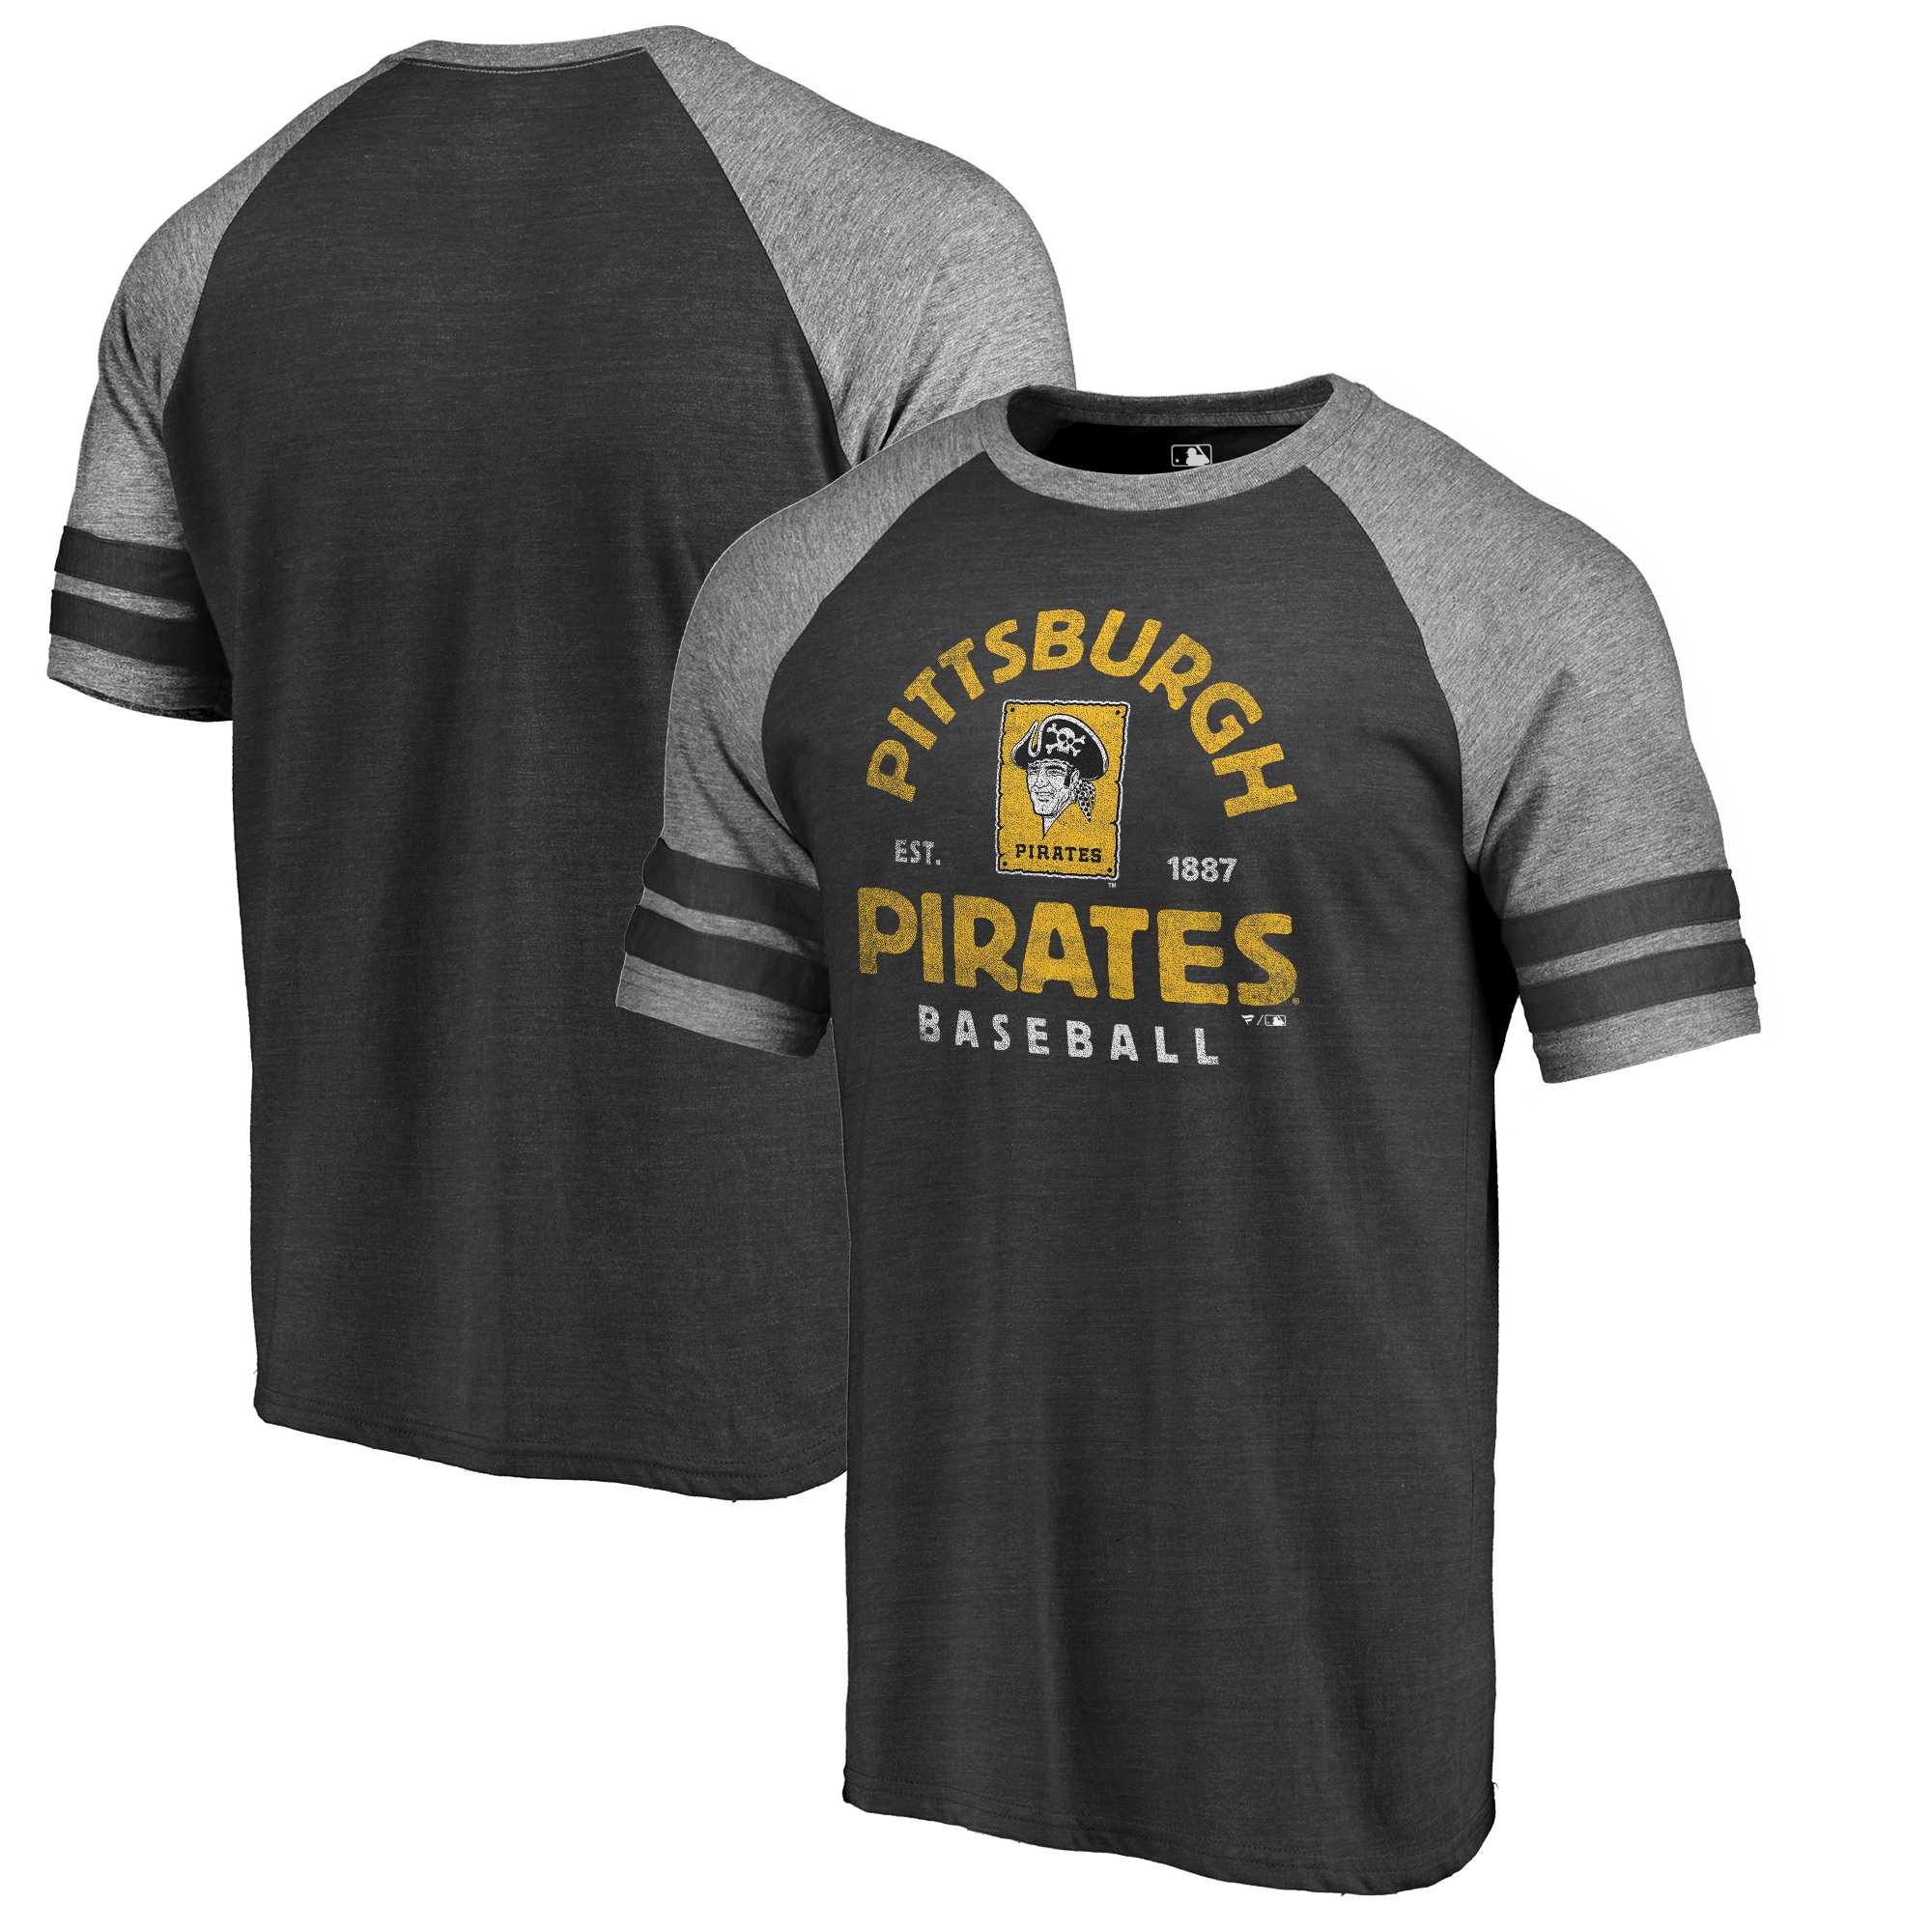 Pittsburgh Pirates Fanatics Branded Cooperstown Collection Vintage Arch Tri-Blend Raglan T-Shirt - Black